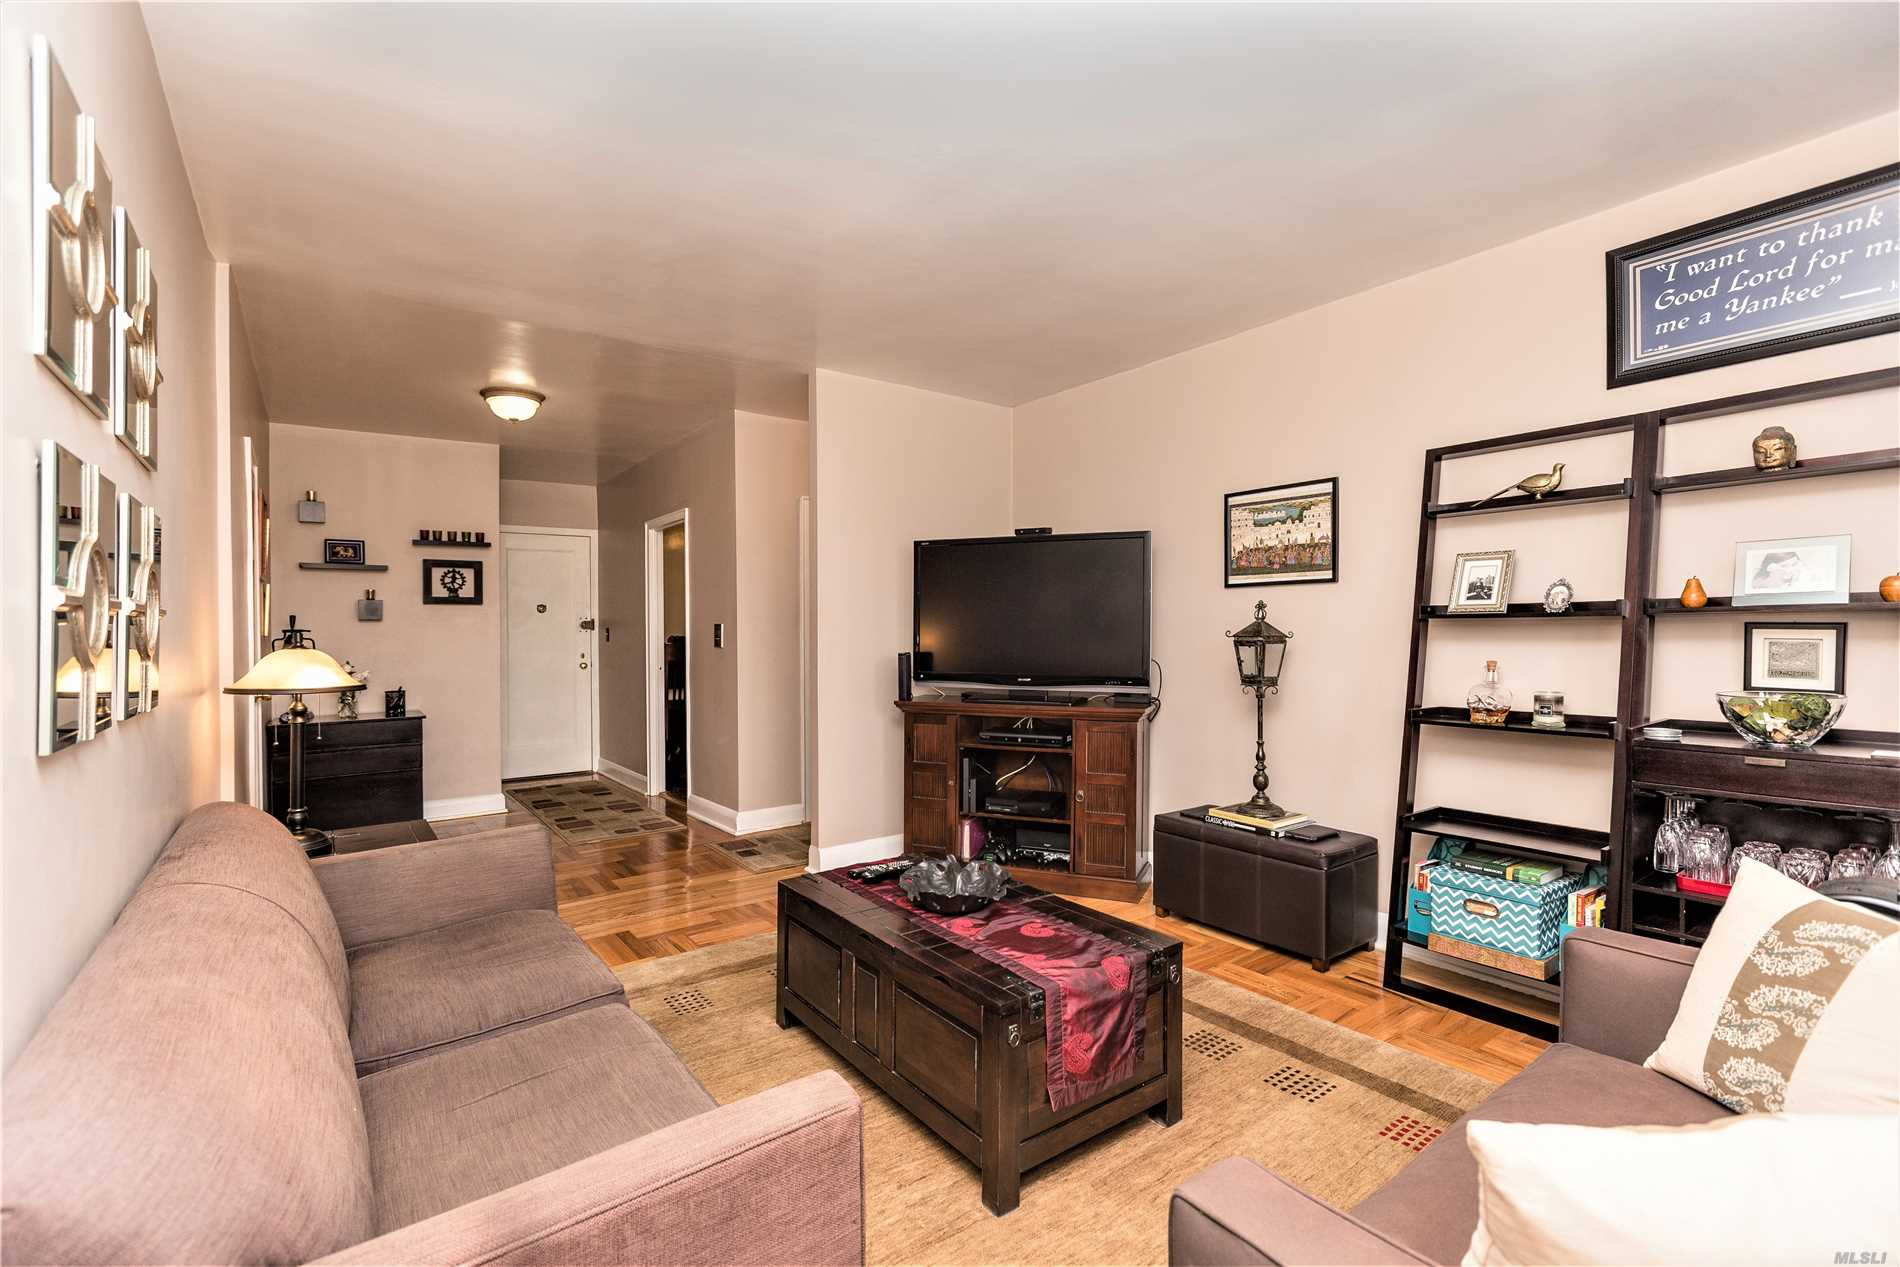 Huge 1 bedroom Co-op with storage, eat-in-kitchen, all hardwood floors, laundry on premises, parking with wait list, pet friendly and about 3 blocks to the 7 train. Sublet allowed after 2 year owner occupancy, min 20% down required.